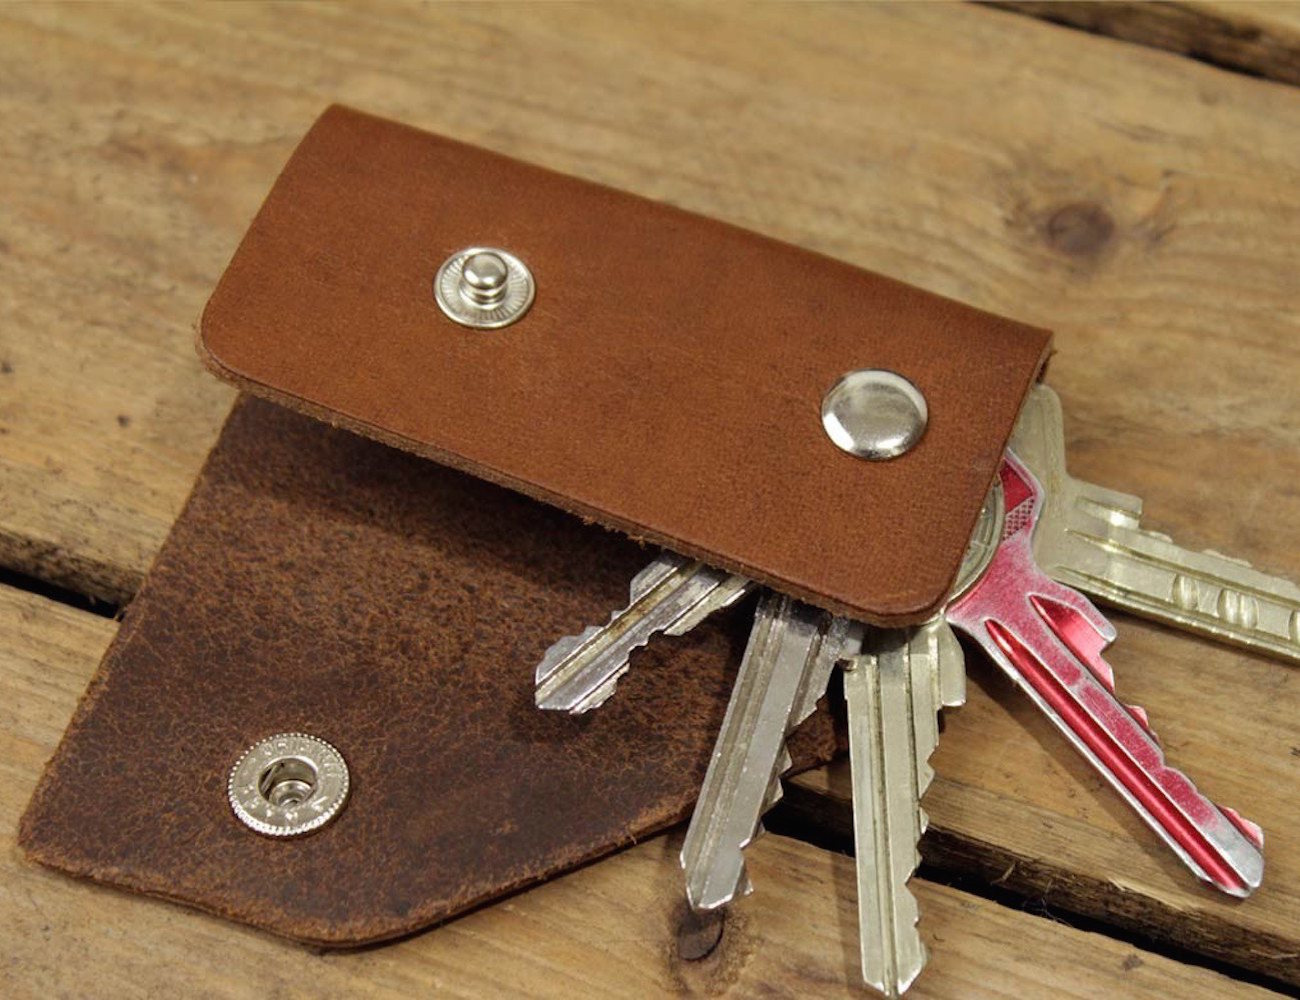 Key Holder Kingsley S or L (5 or 10 keys)